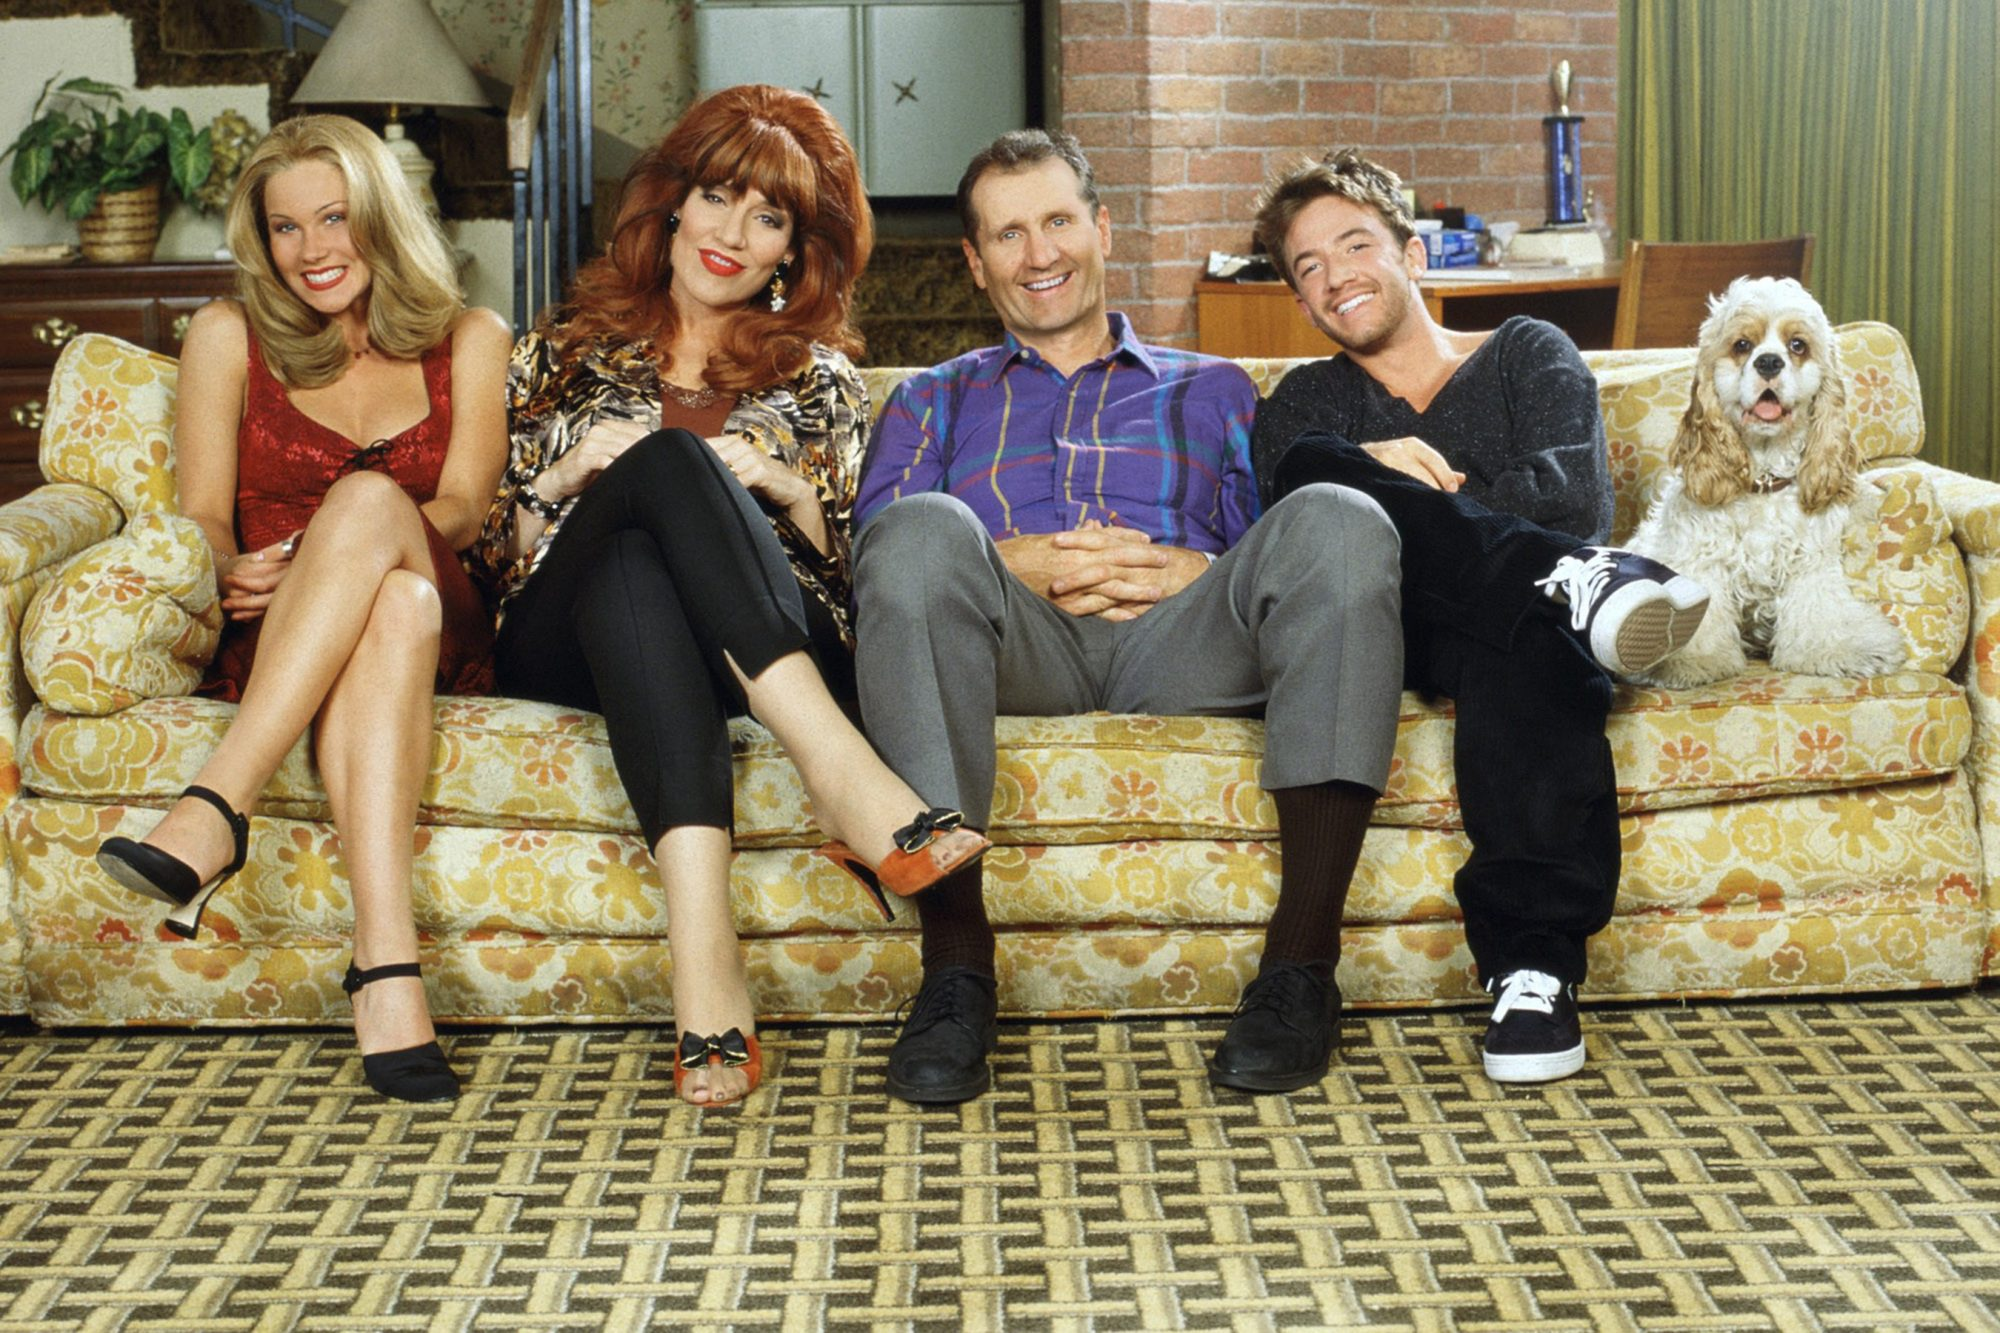 MARRIED...WITH CHILDREN, Christina Applegate, Katey Sagal, Ed O'Neill, David Faustino, Lucky the Dog